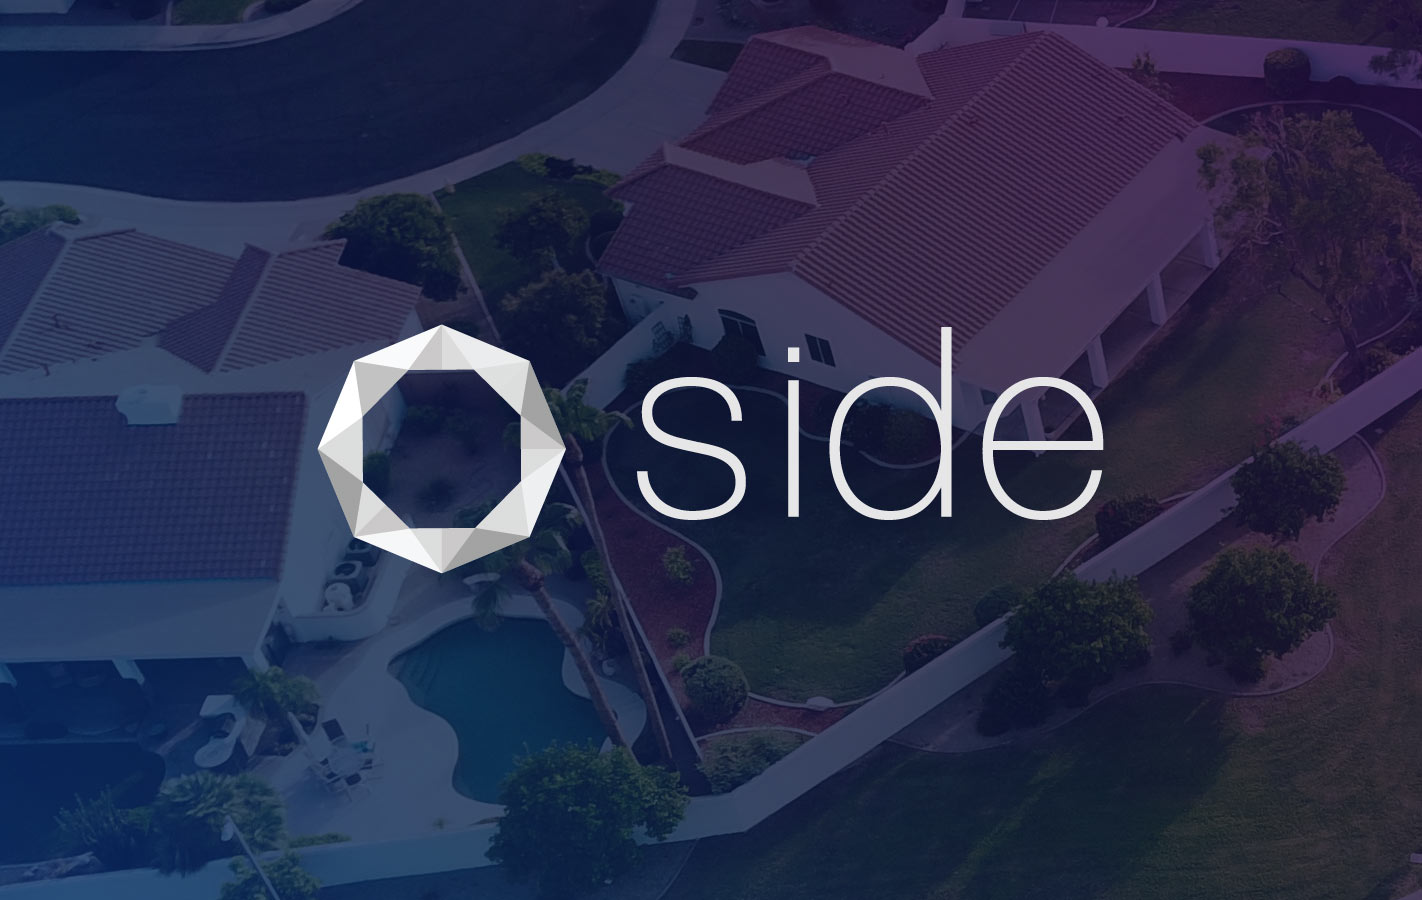 Side raises $150M with $1B valuation